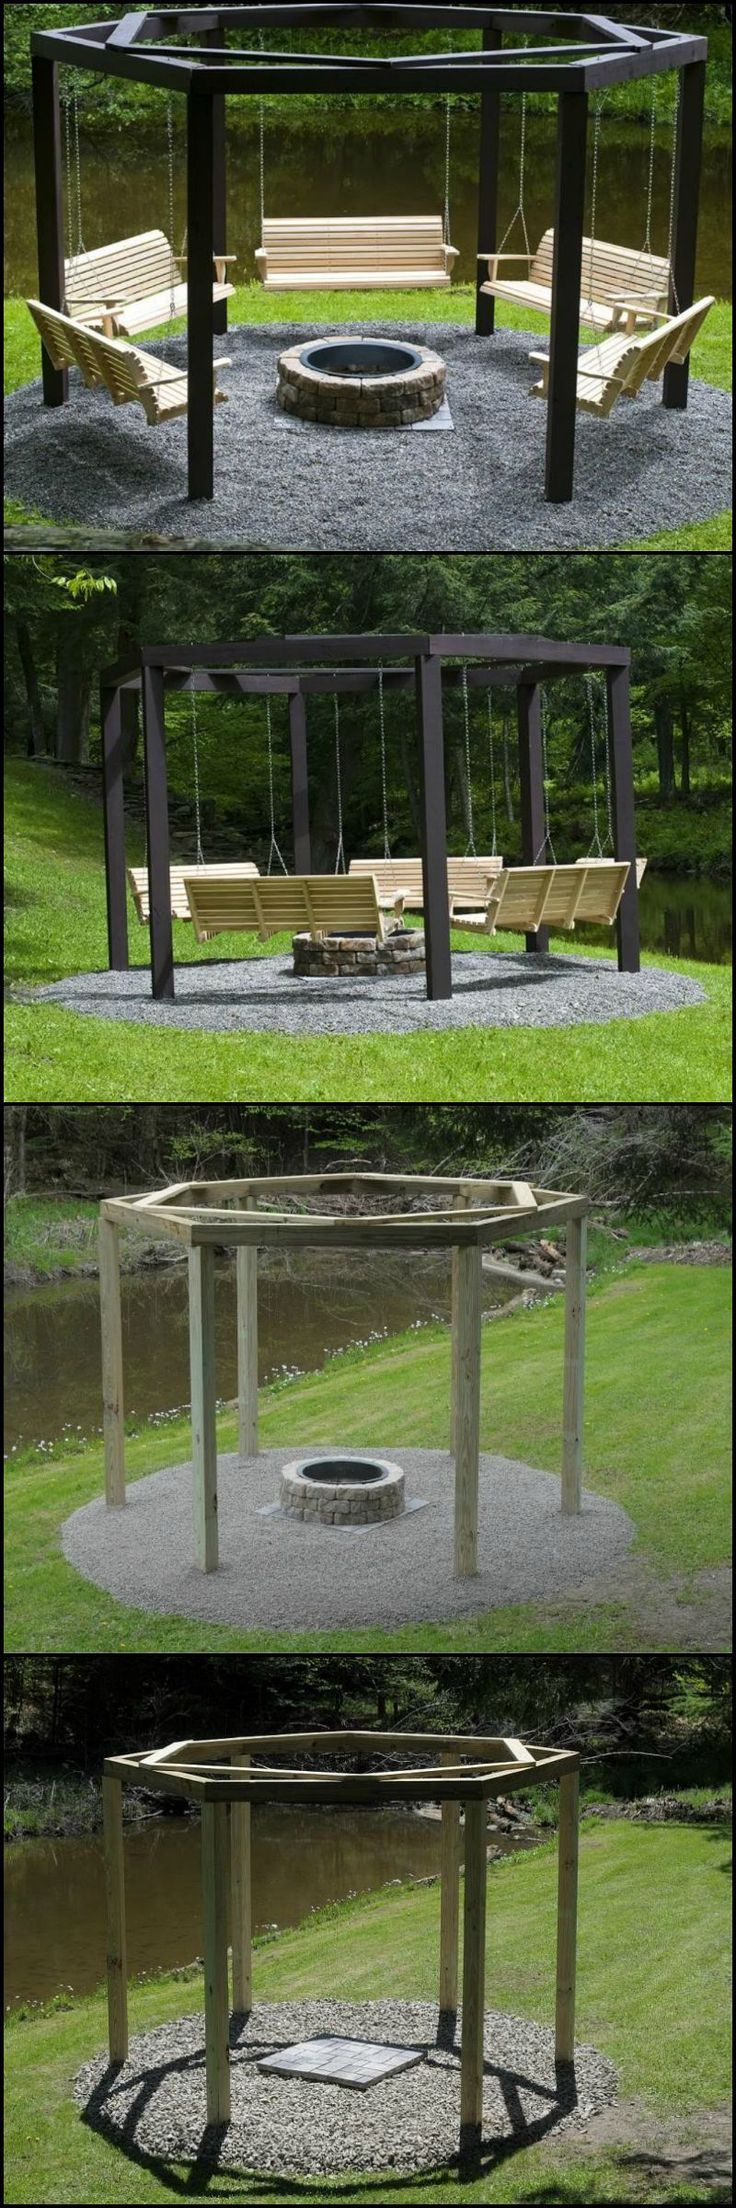 20 best Patio Overhang images on Pinterest | Patio ideas ... on Backyard Overhang Ideas id=92191